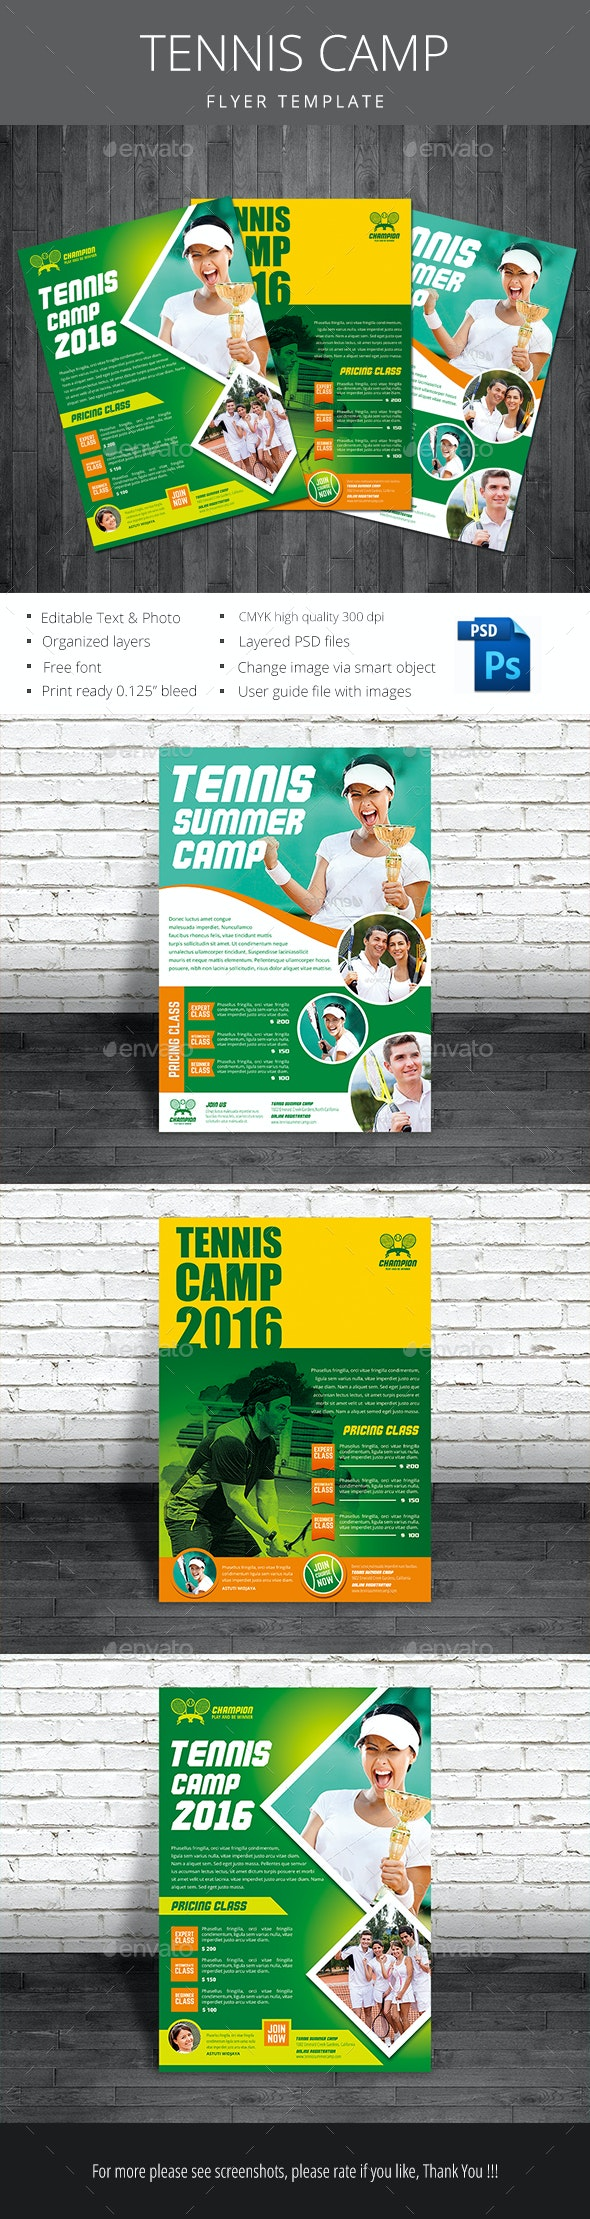 Tennis Camp Flyer - Sports Events